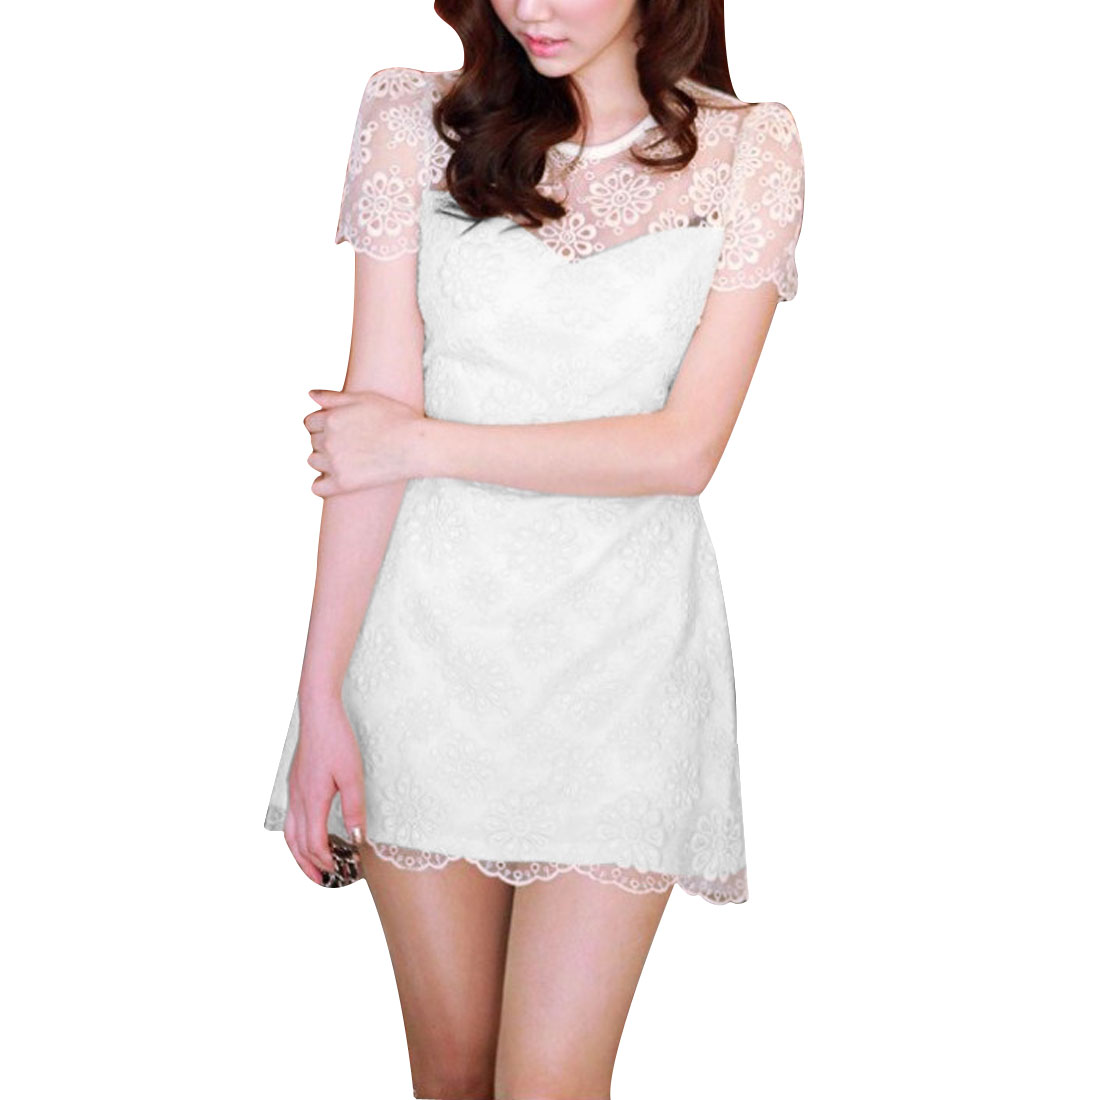 Ladies Round Neck Short Puff Sleeve Crochet Flower Design White Mini Dress XS